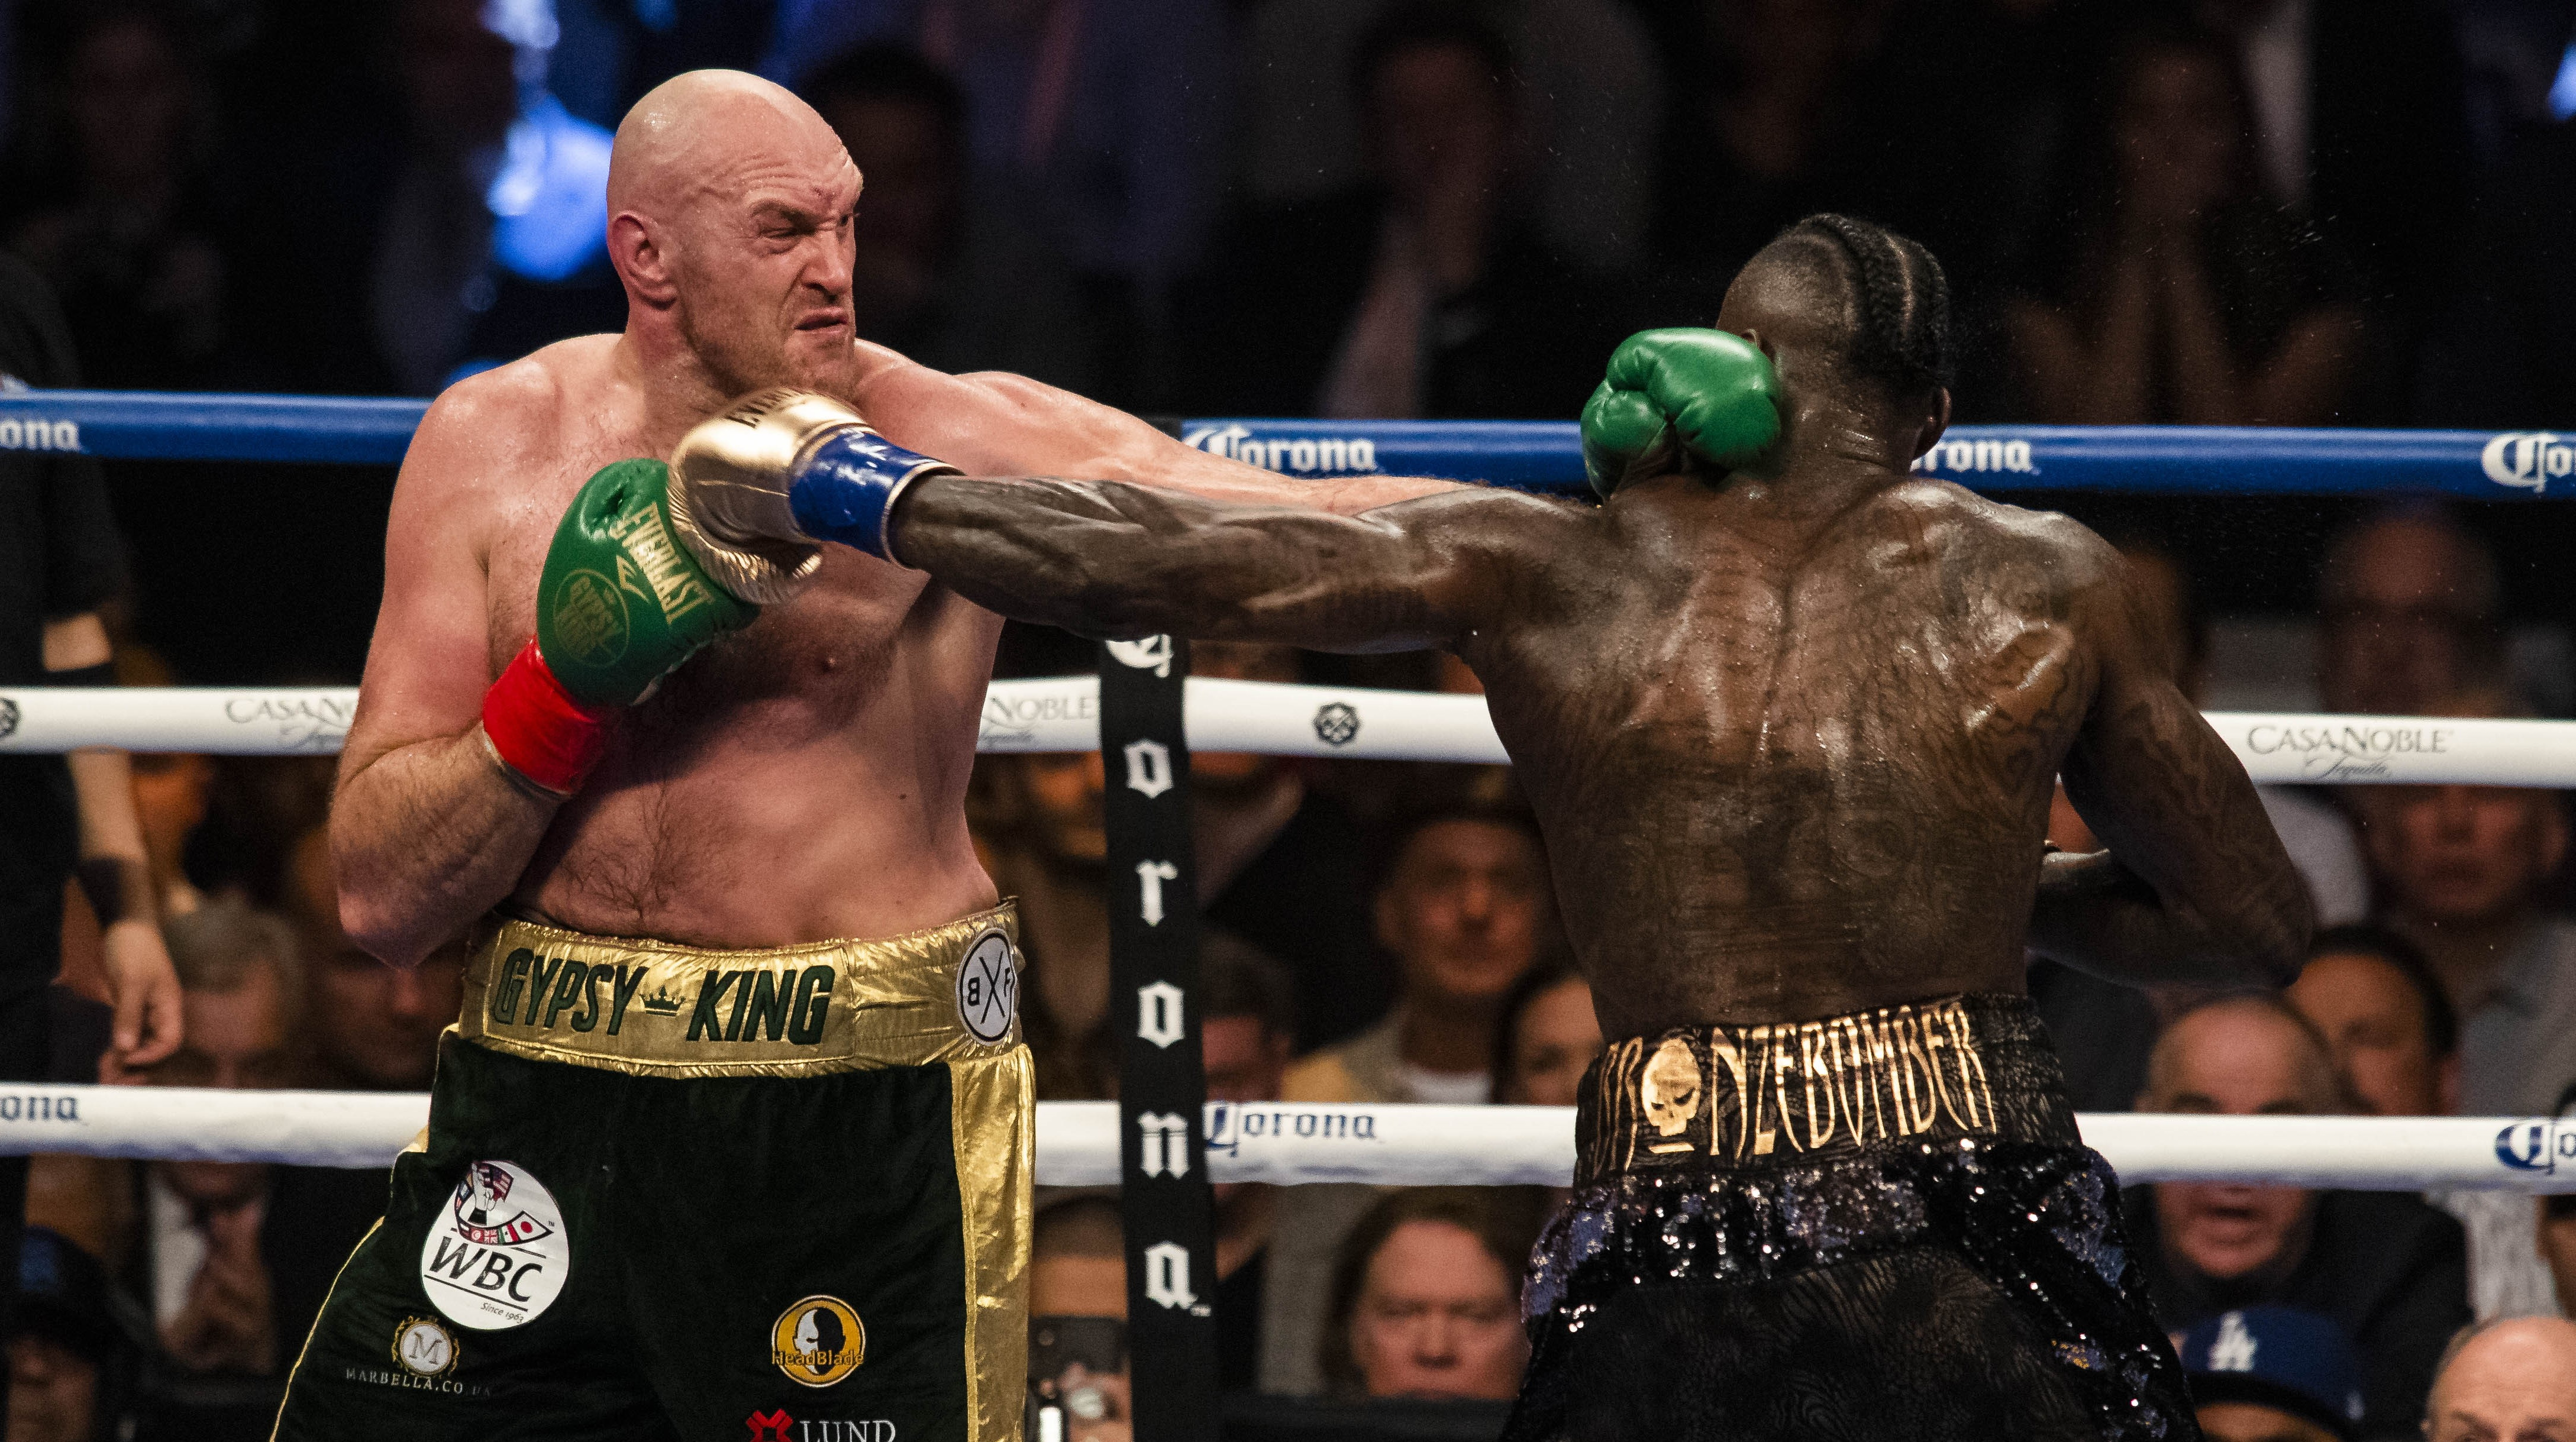 How to watch Wilder vs Fury 2: live stream the huge boxing